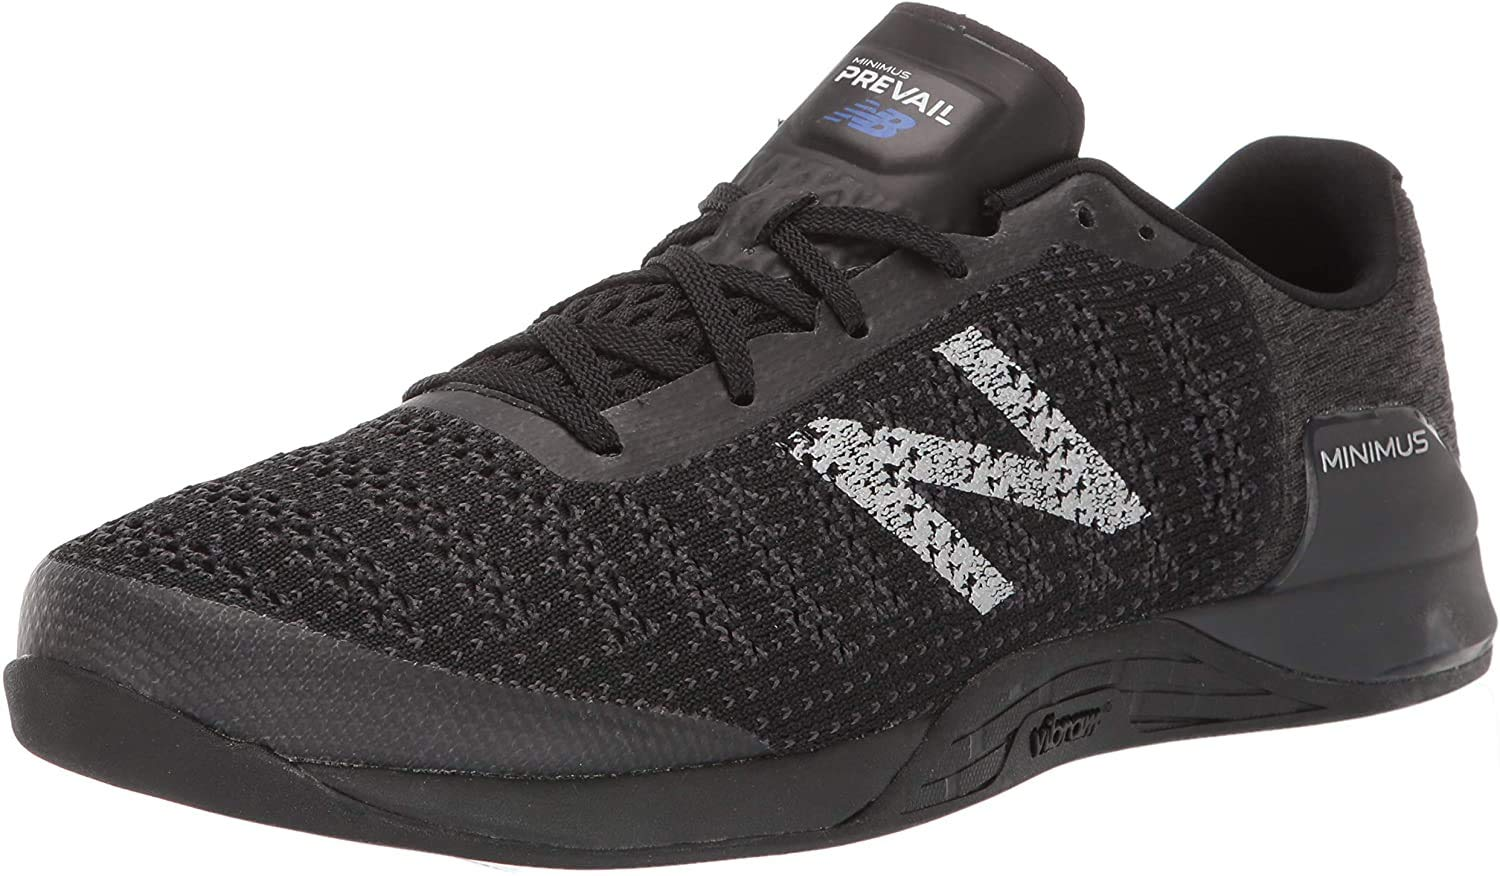 New Balance Men's Minimus Prevail V1 Cross Trainer